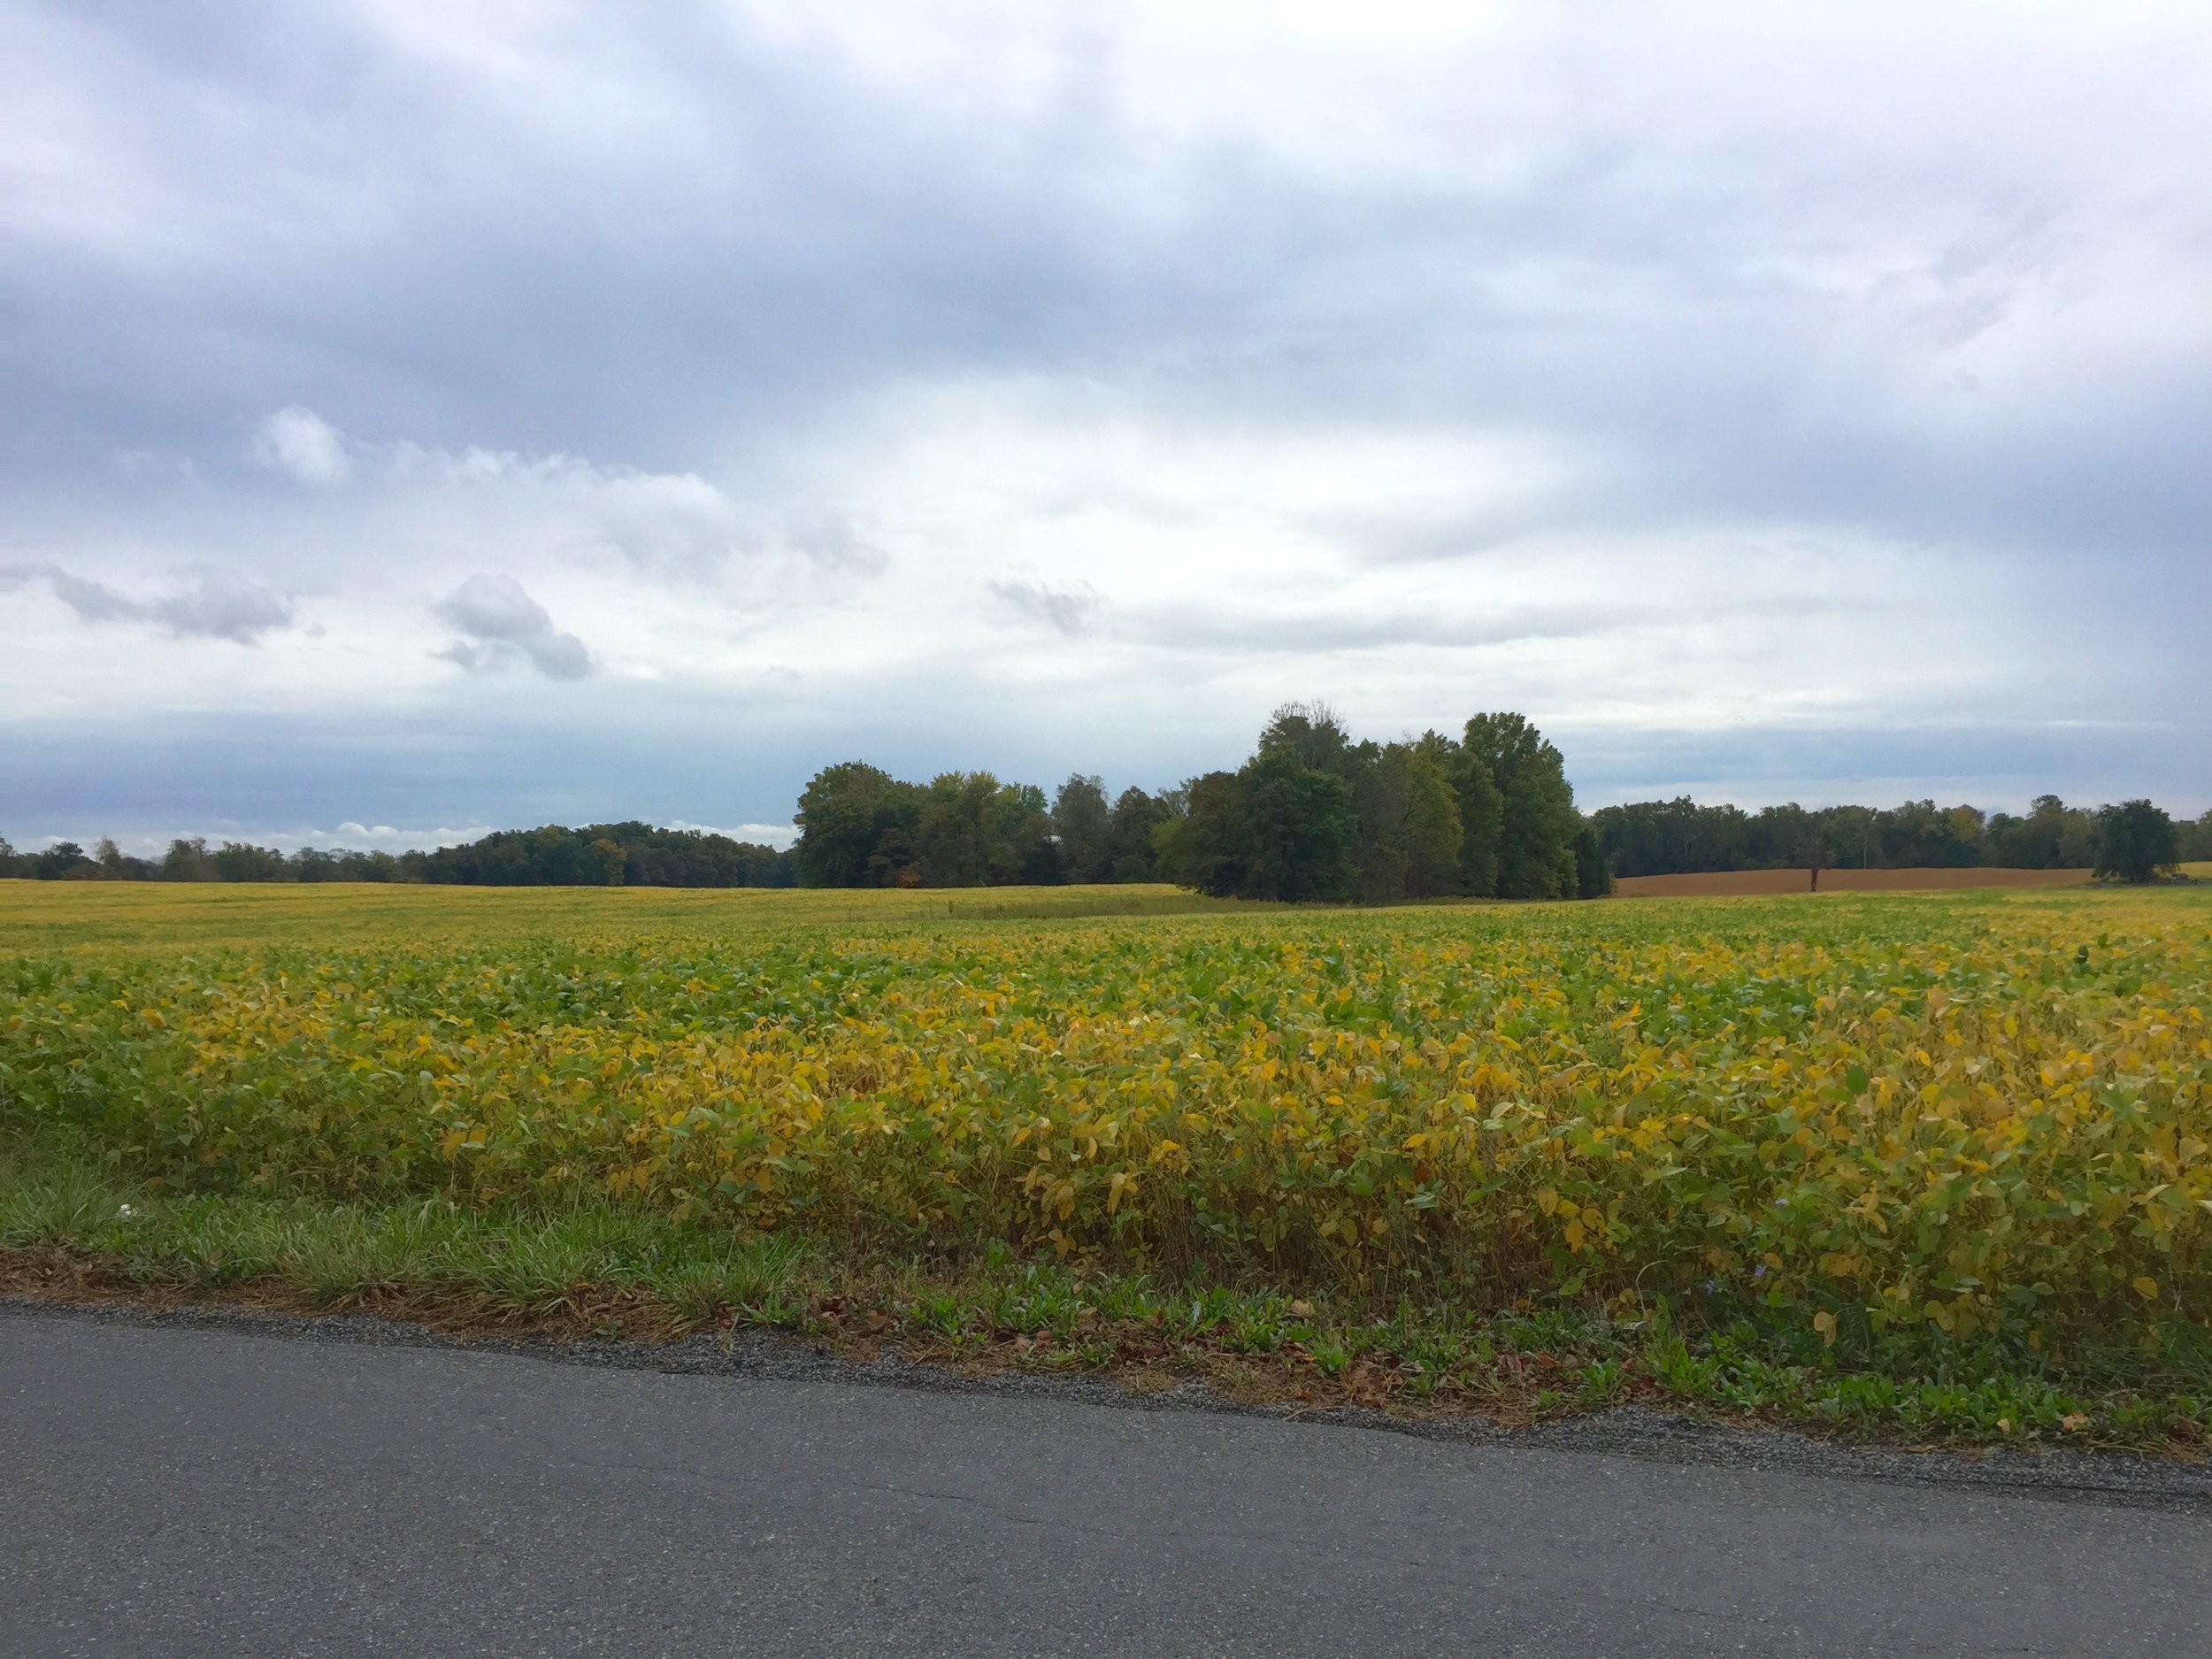 Fall colors in Poolesville Soybean fields